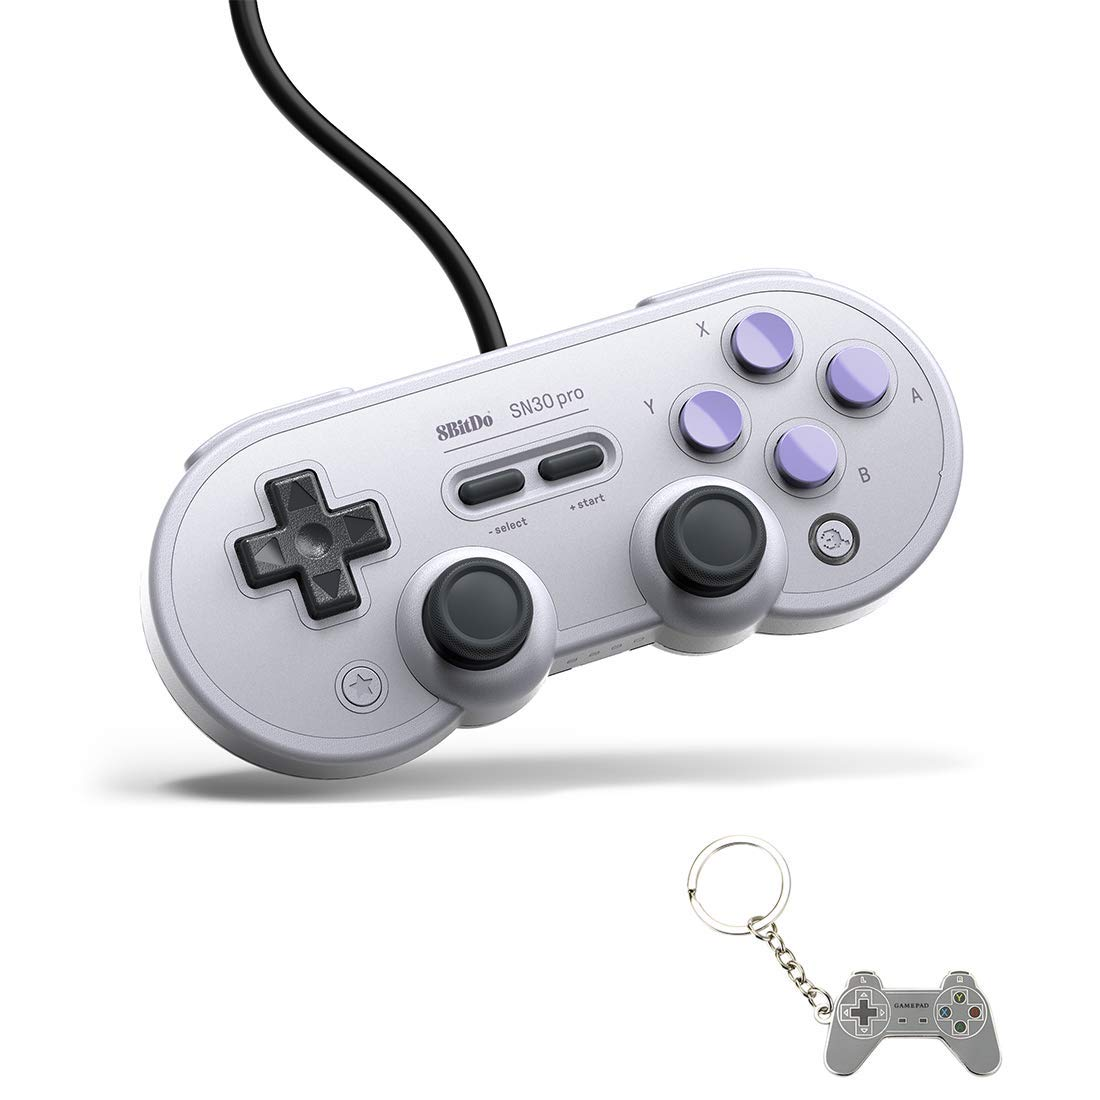 USB Game Controller for PC, 8Bitdo SN30 Pro Wired Controller/Gamepad for Raspberry Pi, Laptop and Nintendo Switch - (SN Edition)